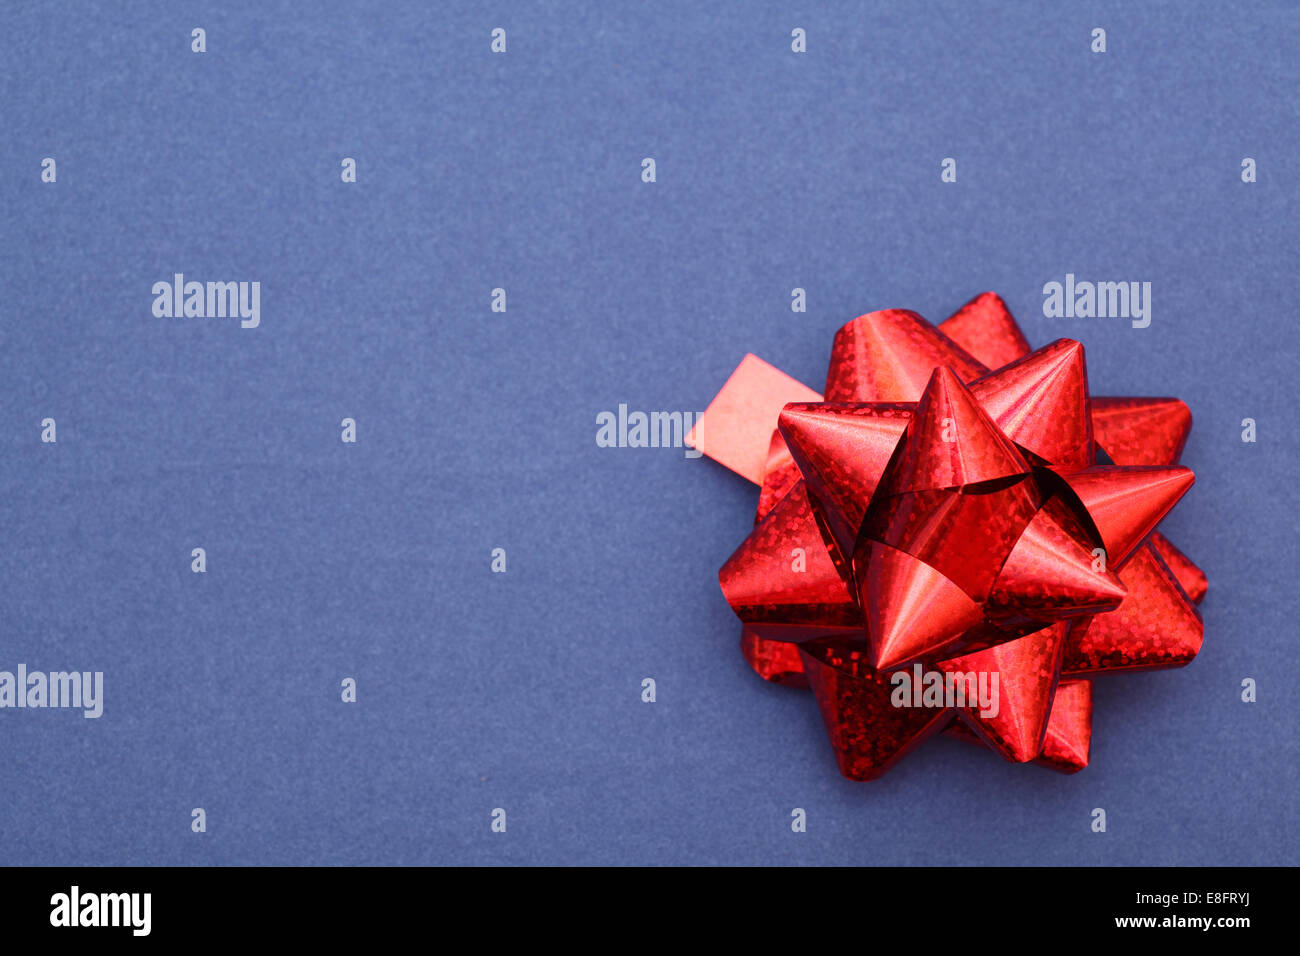 Red bow on blue paper background. Closeup. - Stock Image